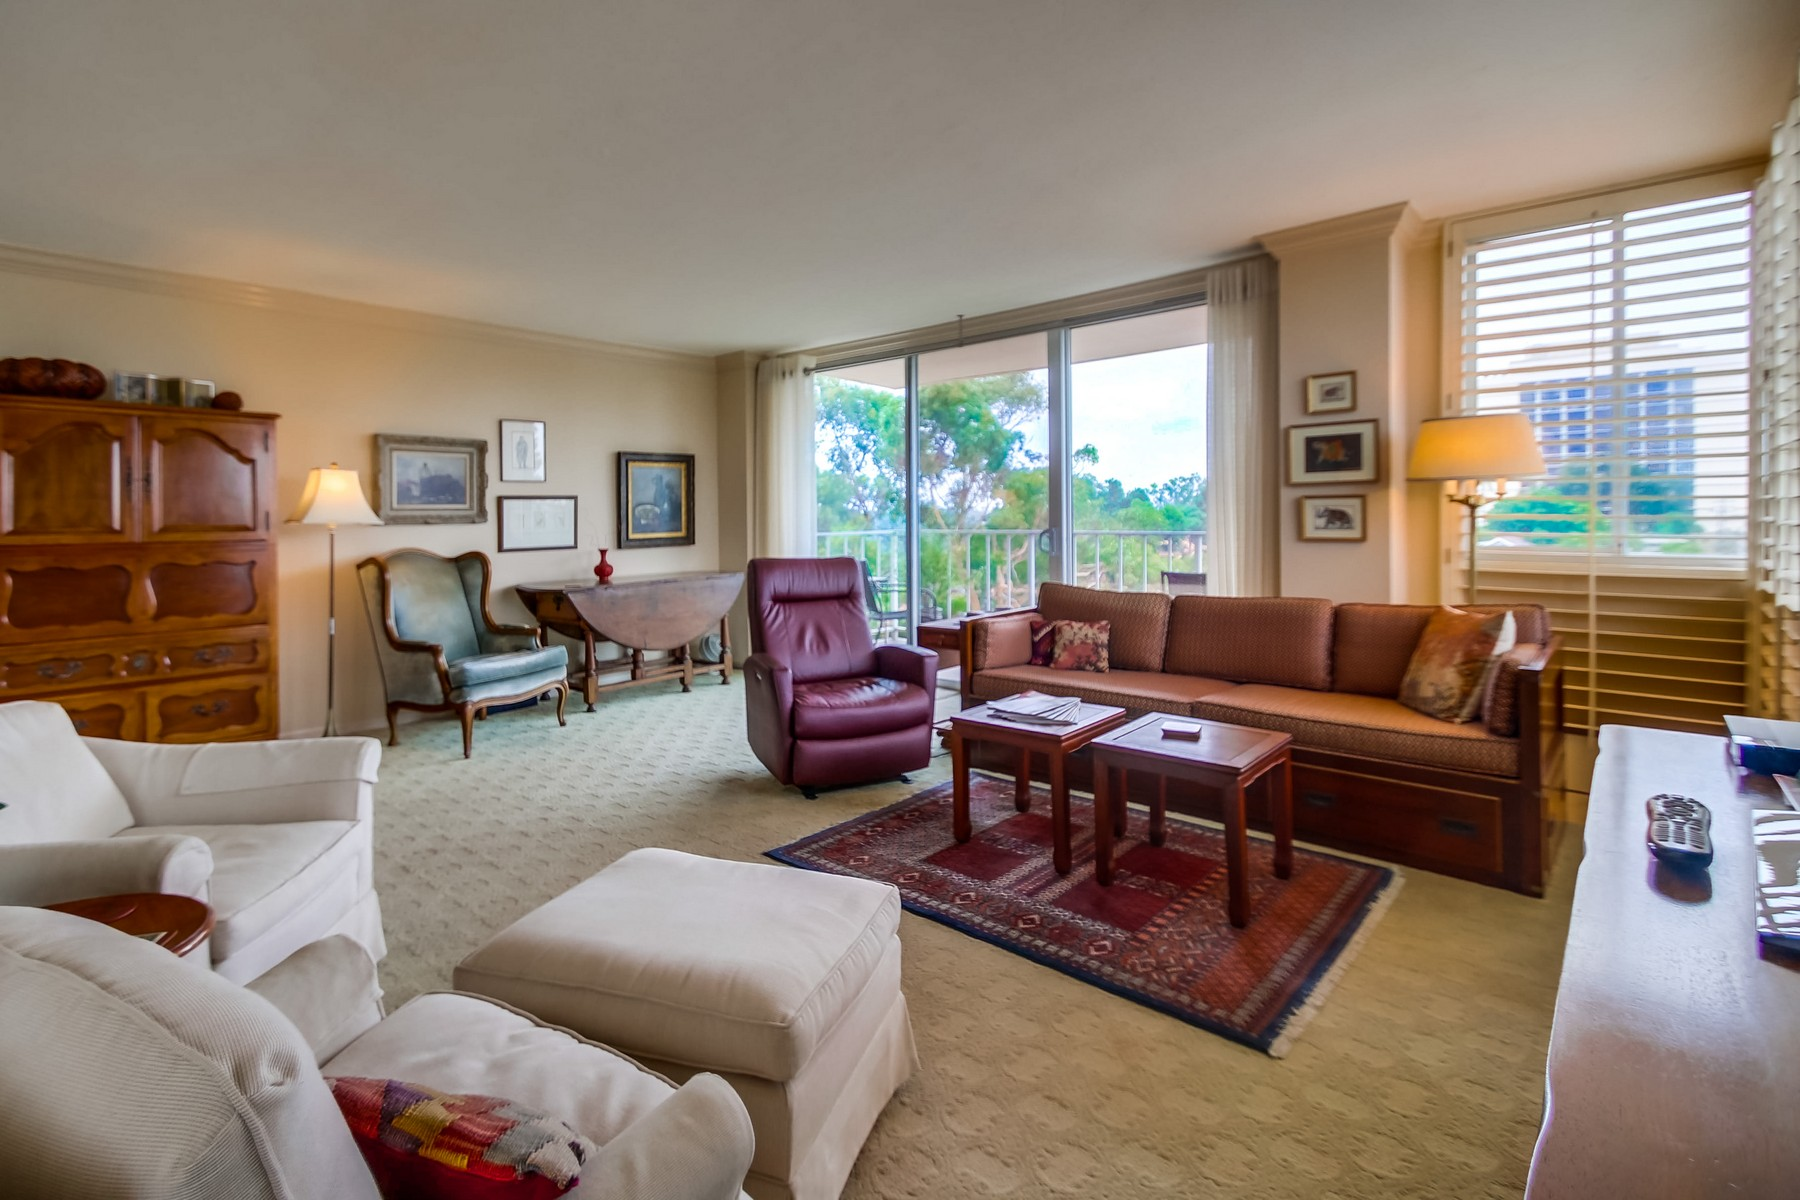 Condominium for Sale at Coral Tree Plaza 3634 7th Avenue 7A, Hillcrest, San Diego, California, 92103 United States